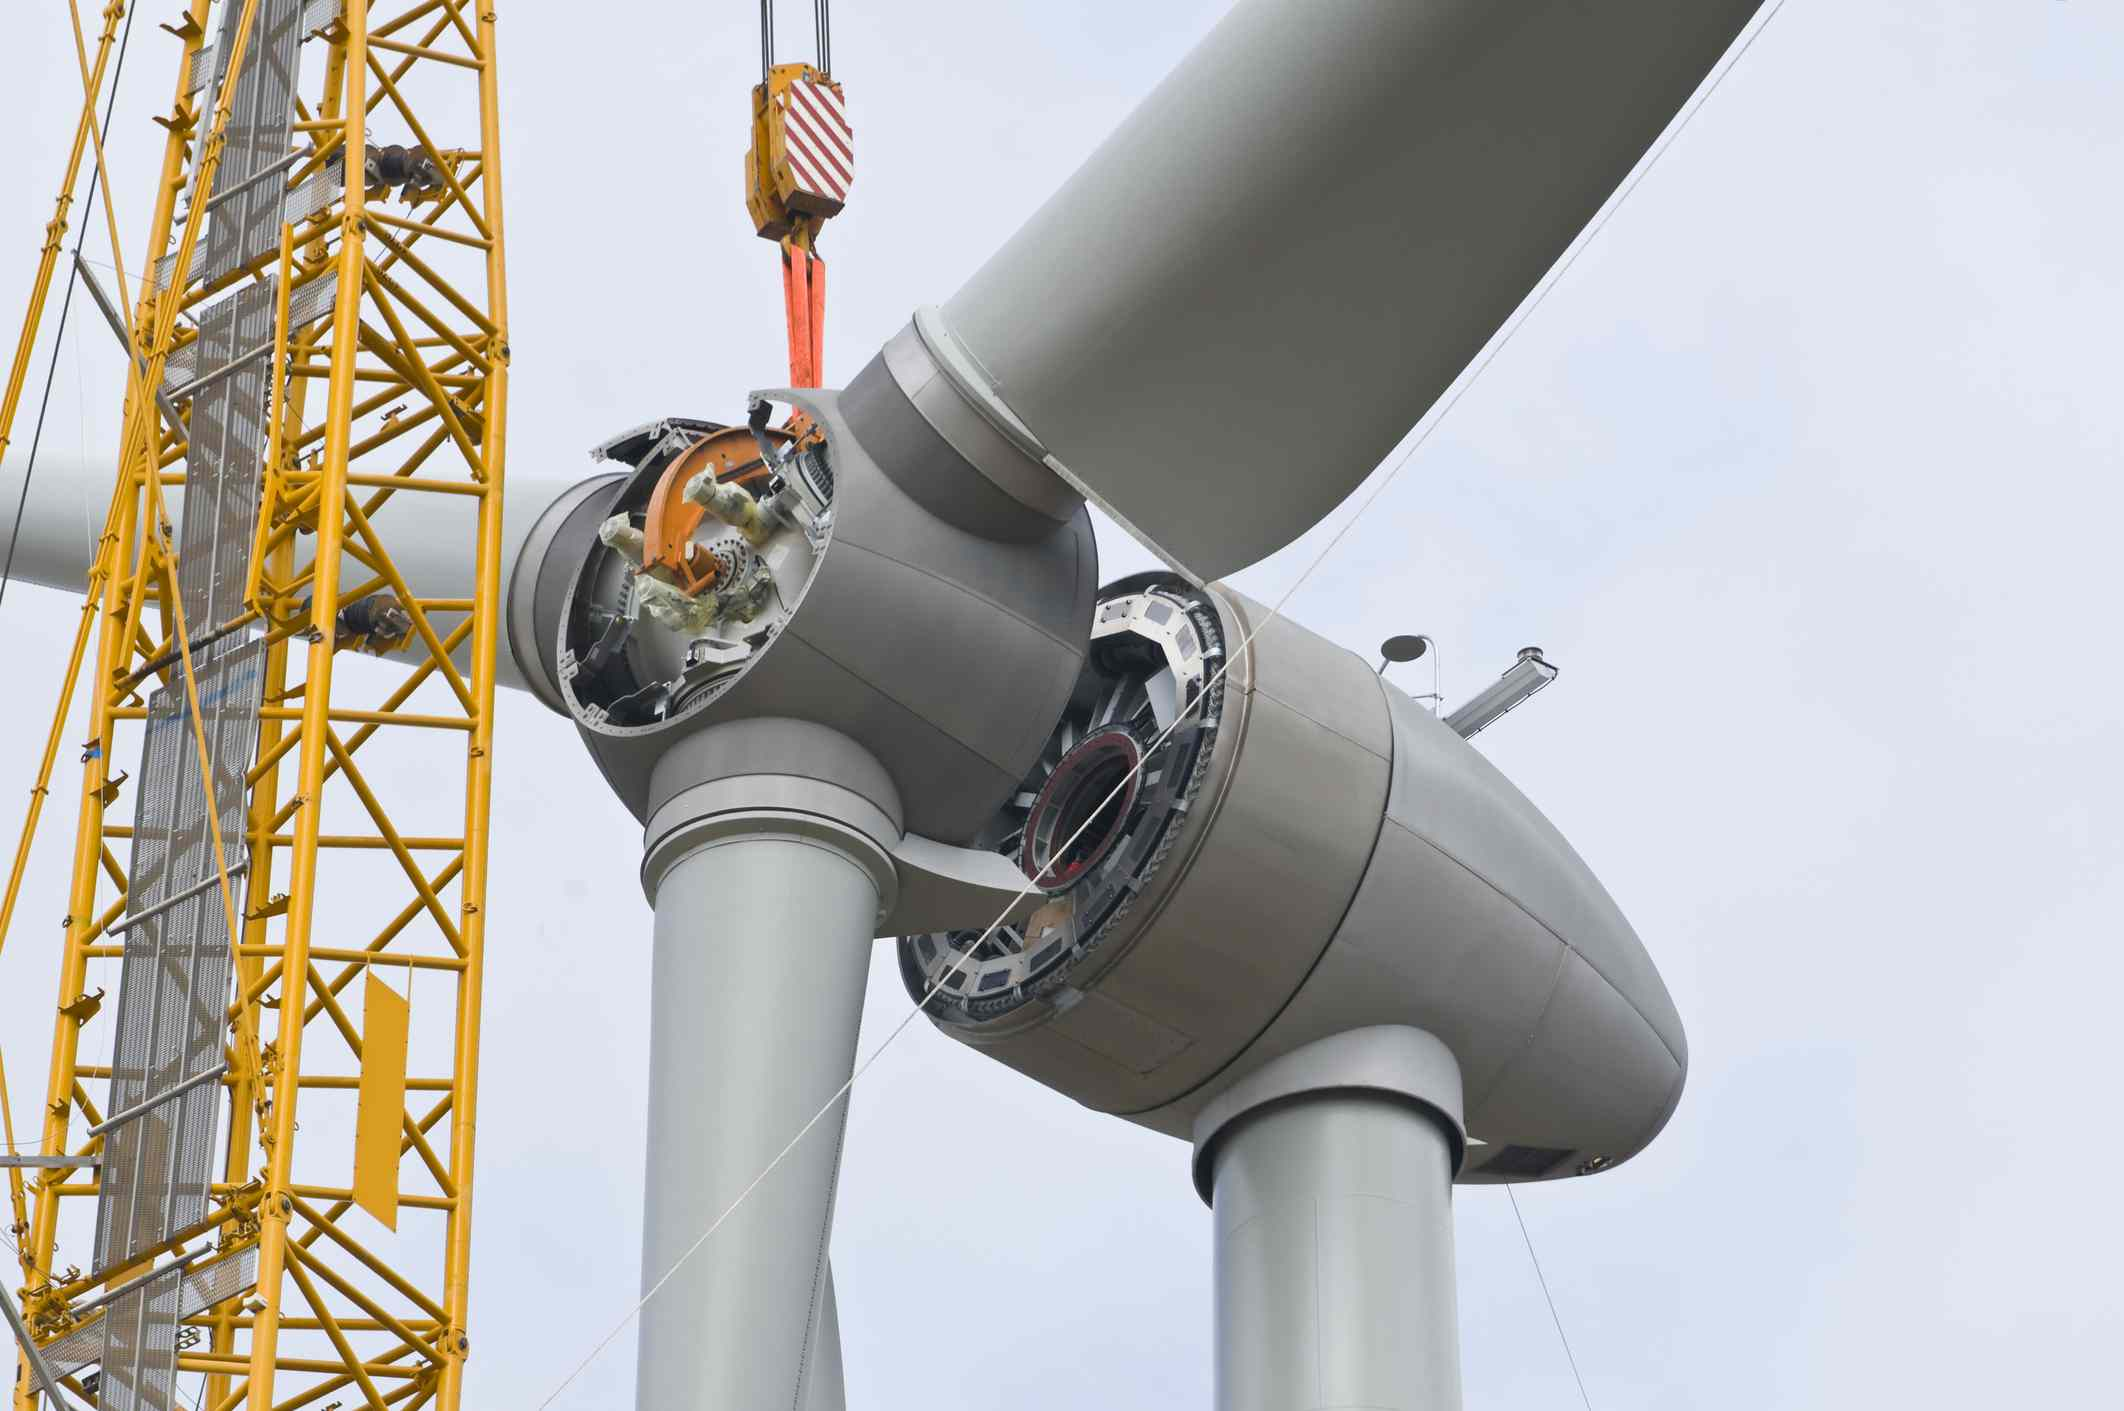 wind turbine being constructed